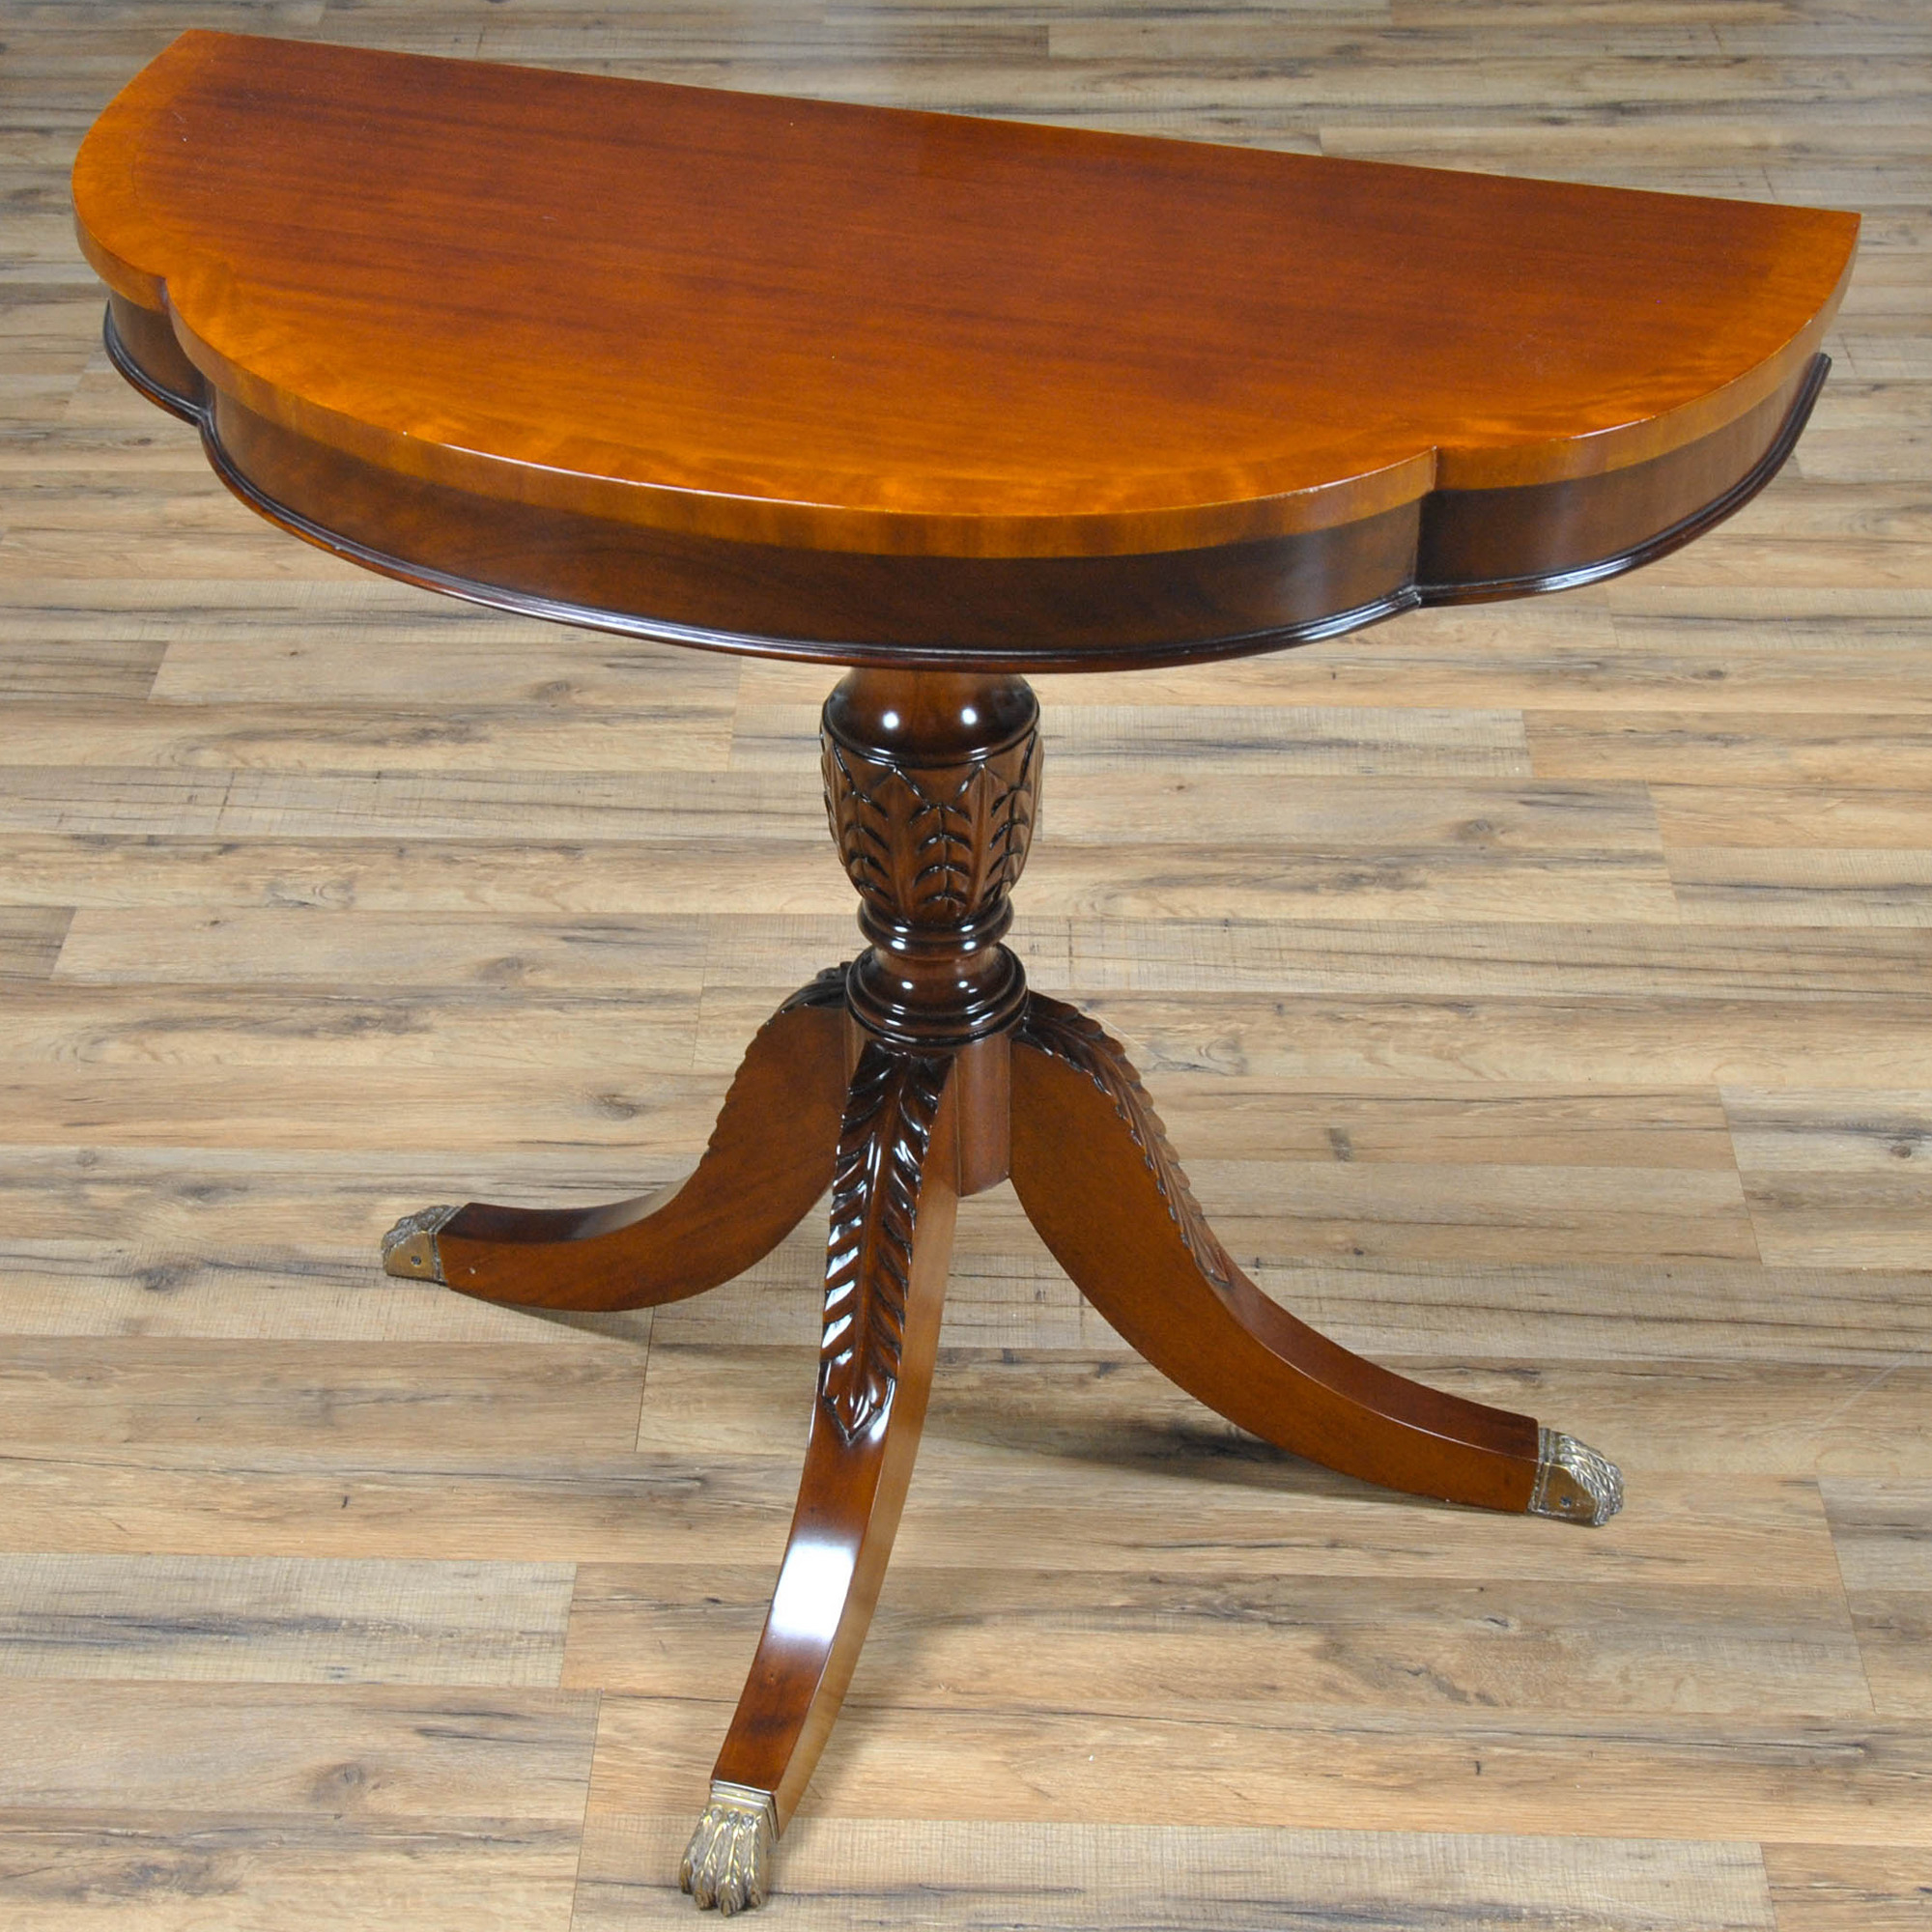 Duncan Phyfe Round Table With Drawer.Duncan Phyfe Round Table Visual Hunt